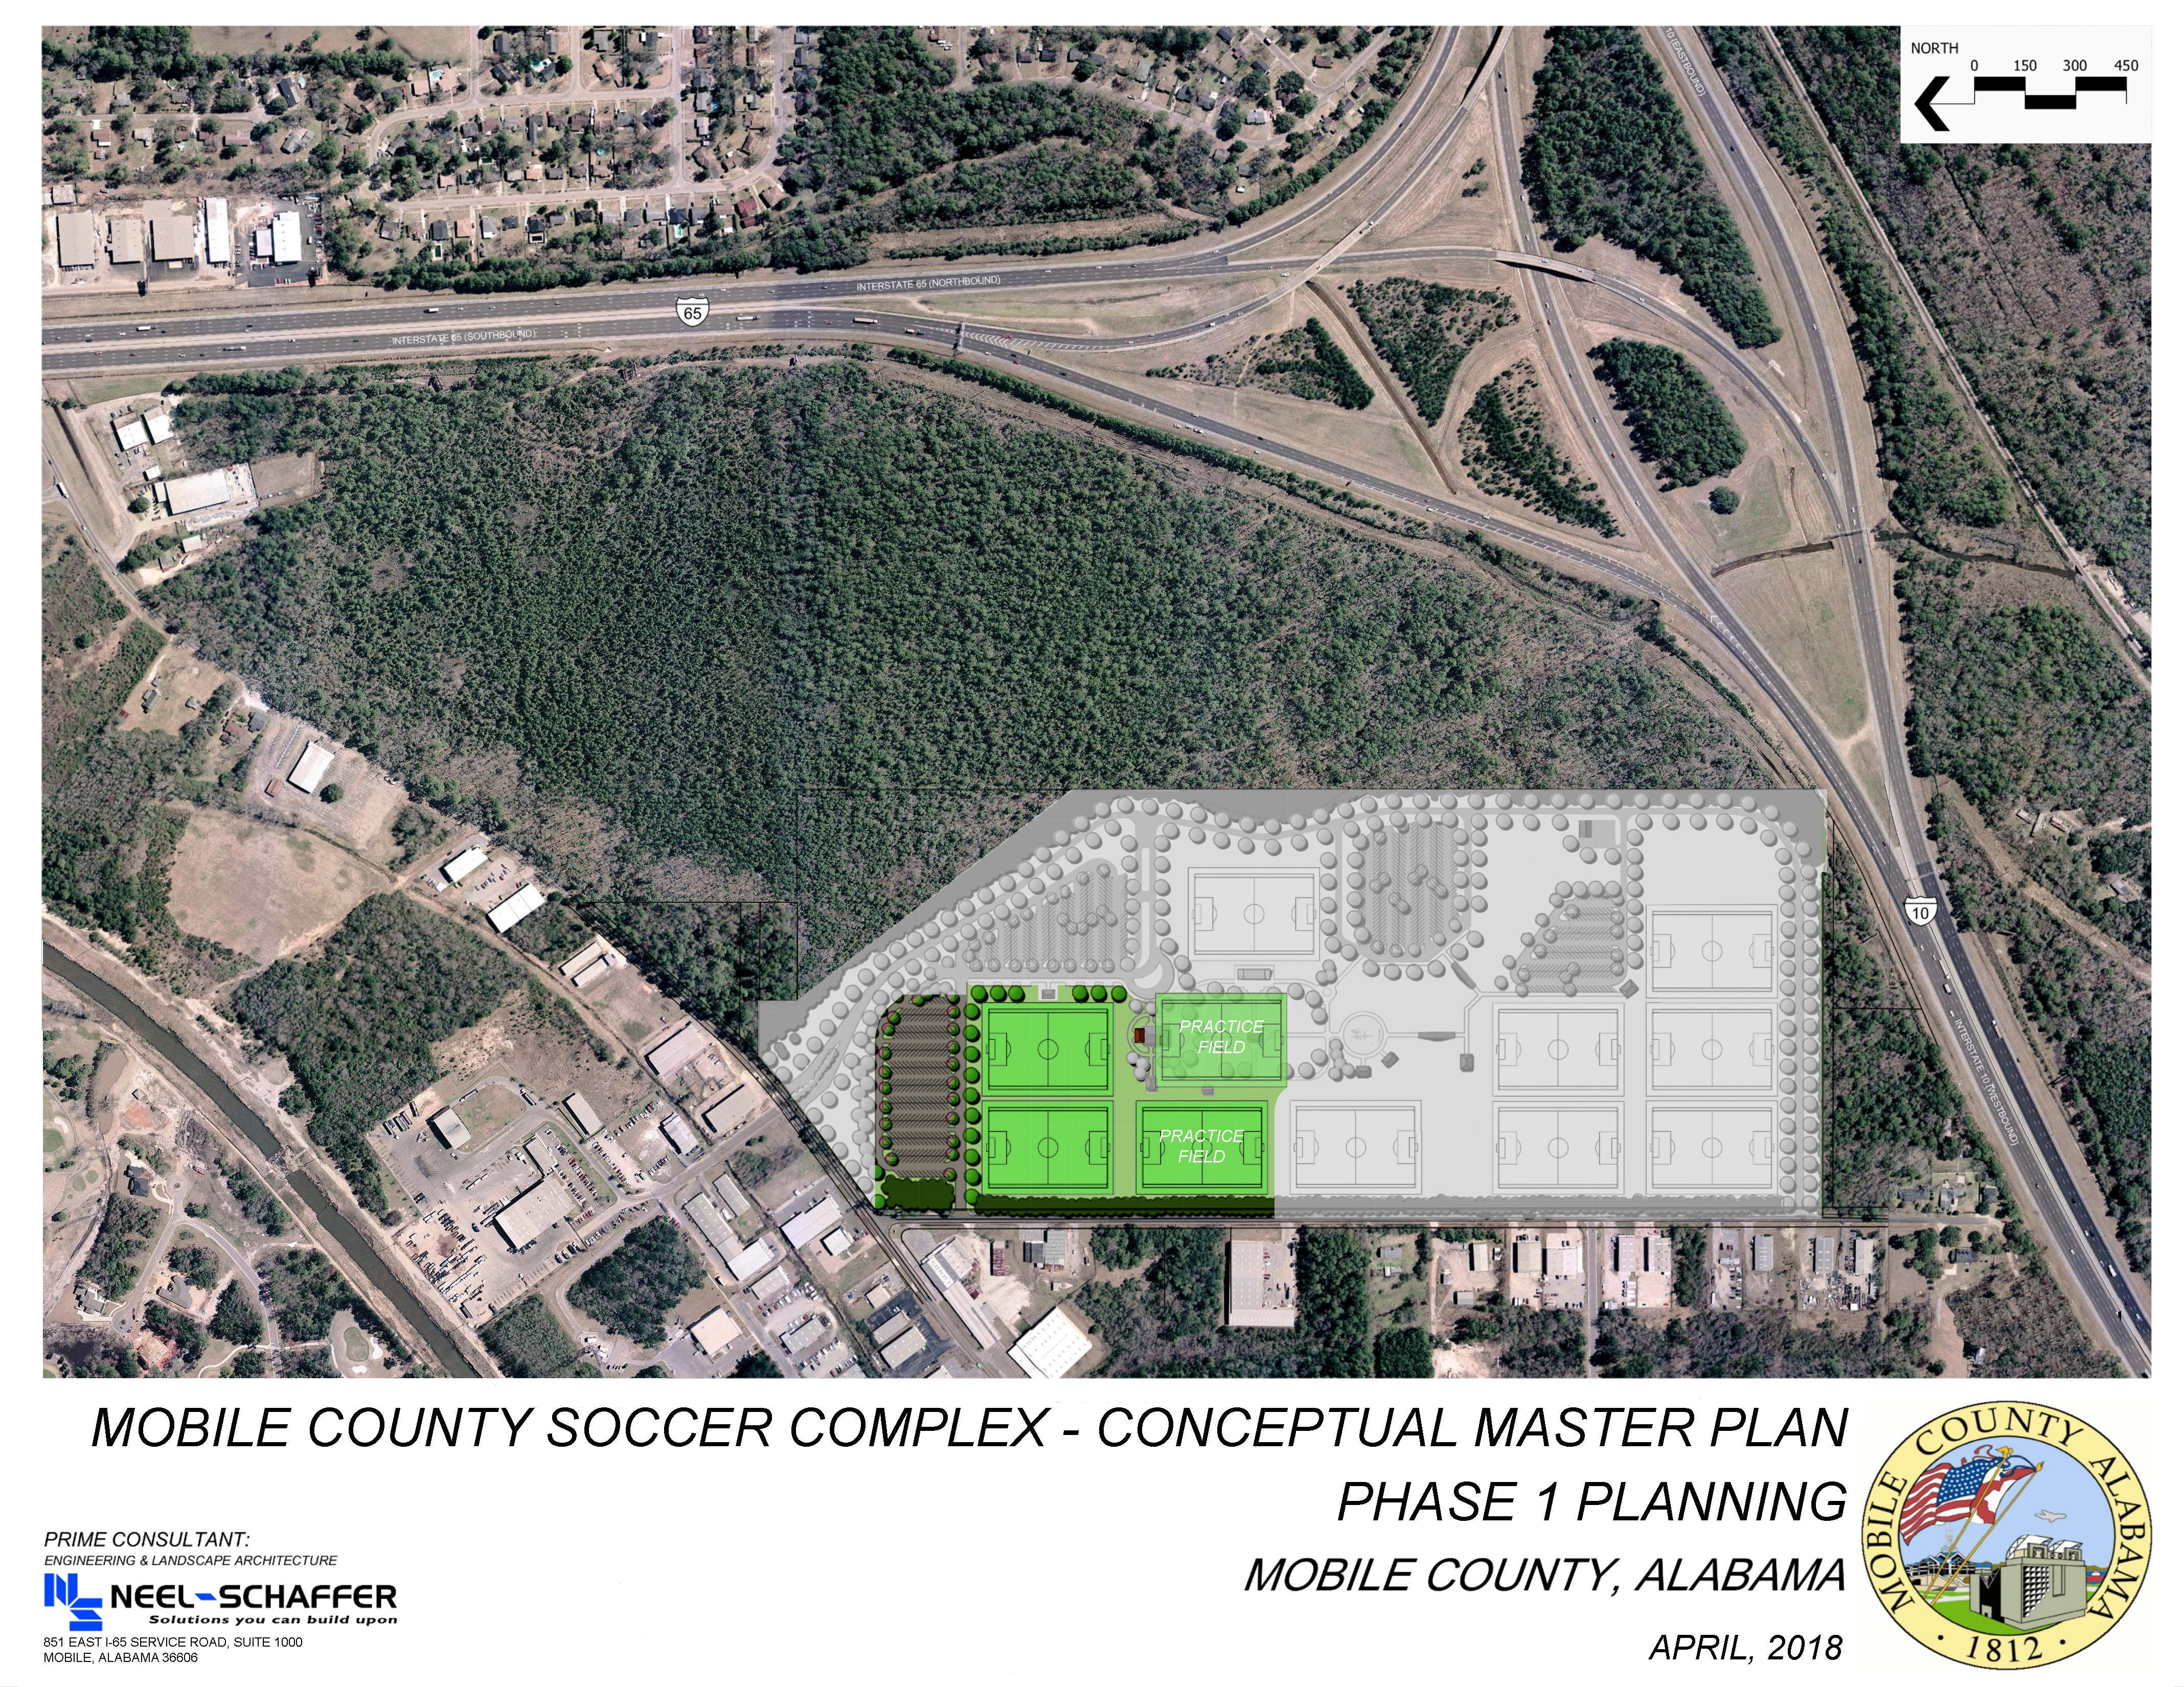 areal conceptual plan map of location where soccer complex will be located